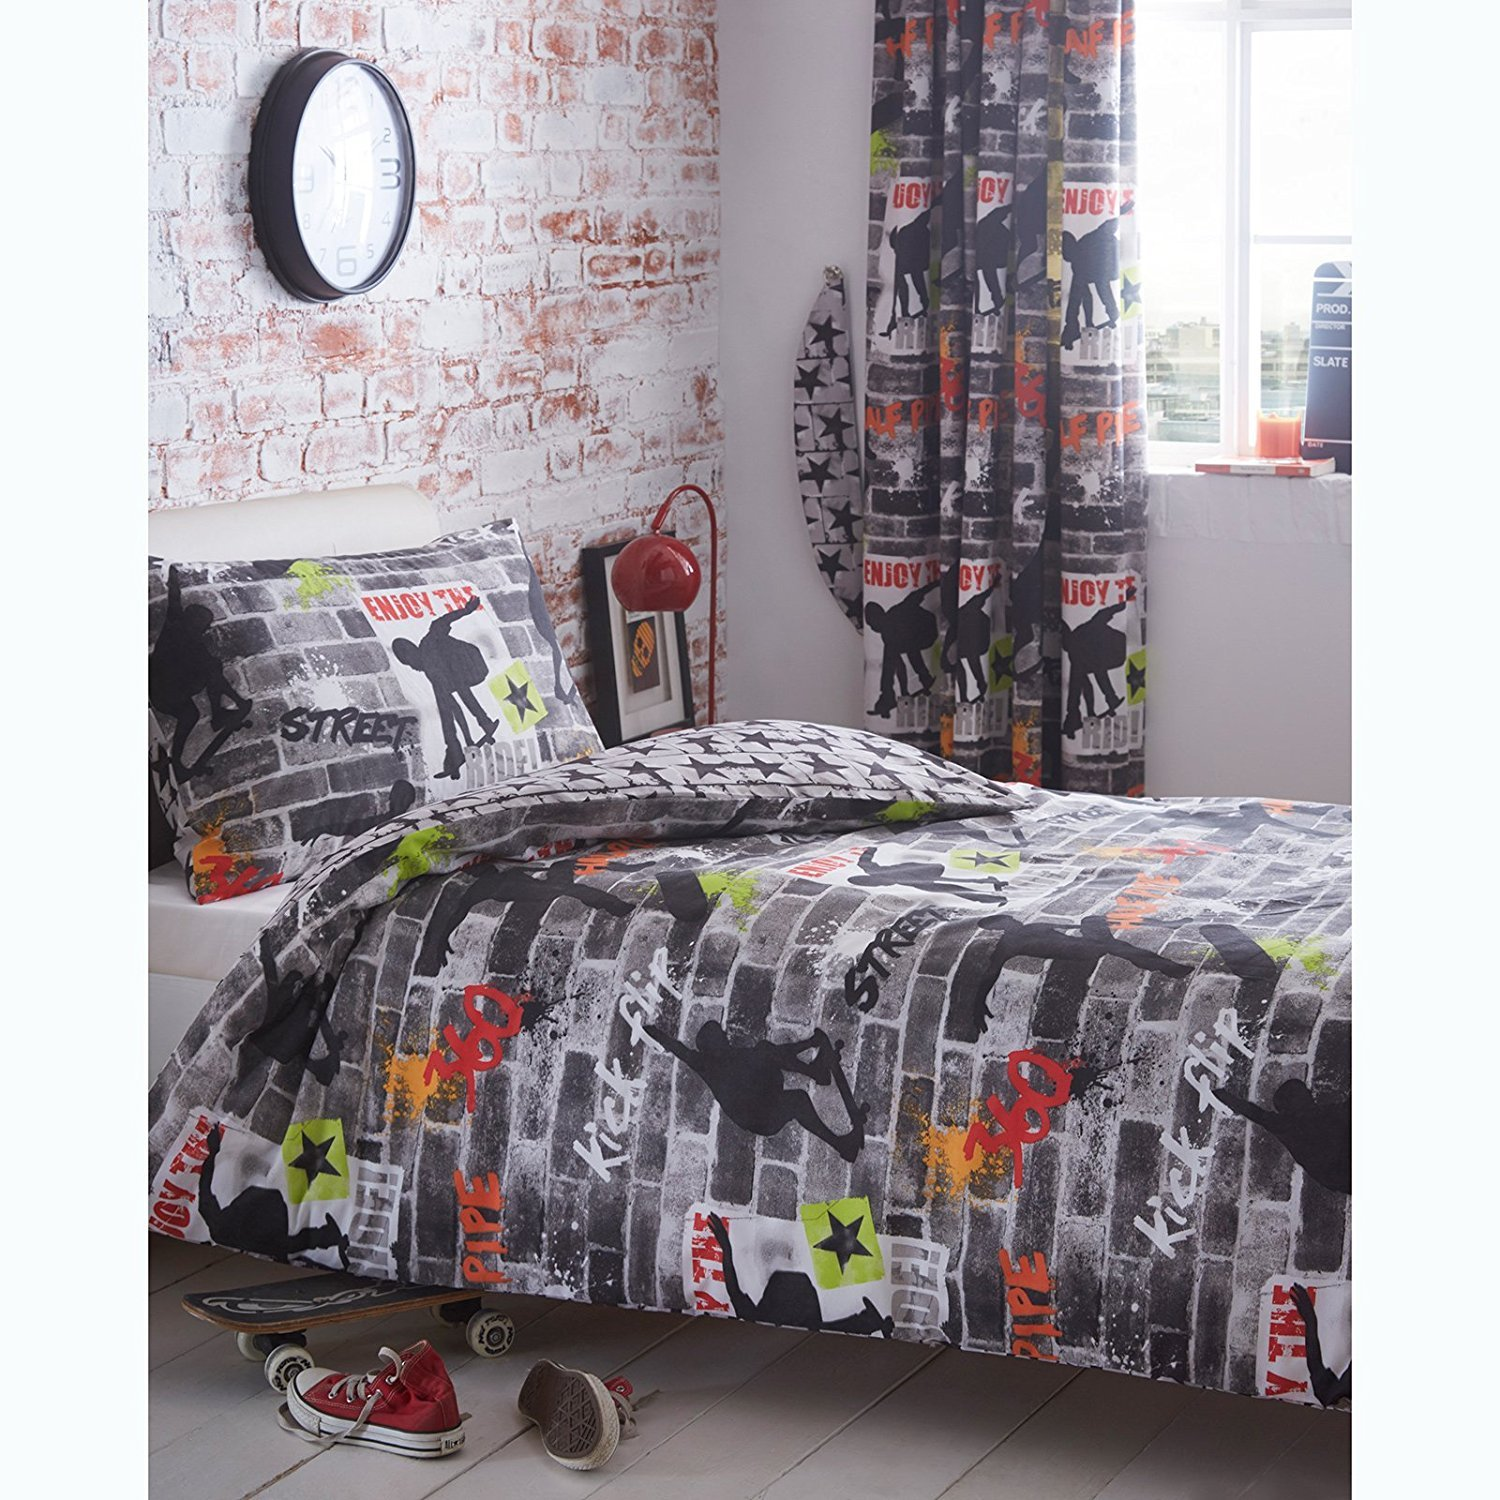 Kidz Club Teenagers Single Bed Duvet Cover and Pillowcase Bedding Bed Set Cool Skateboards and Graffiti Quilt Cover Set - Tricks, Grey Bedmaker PTRID1